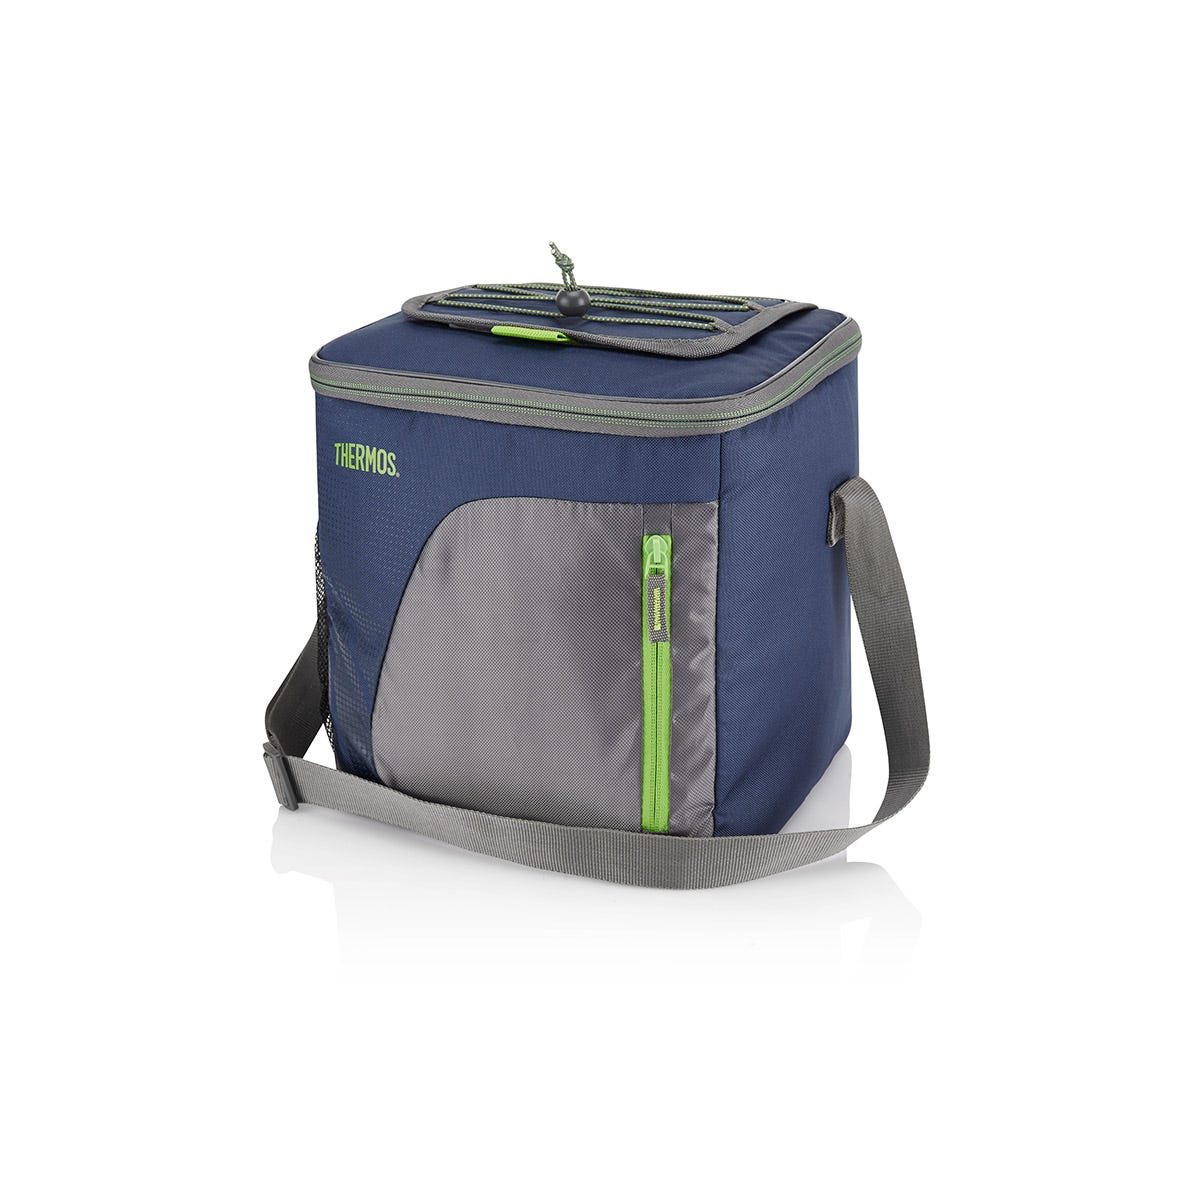 Thermos Radiance 16L Cool Bag - Navy